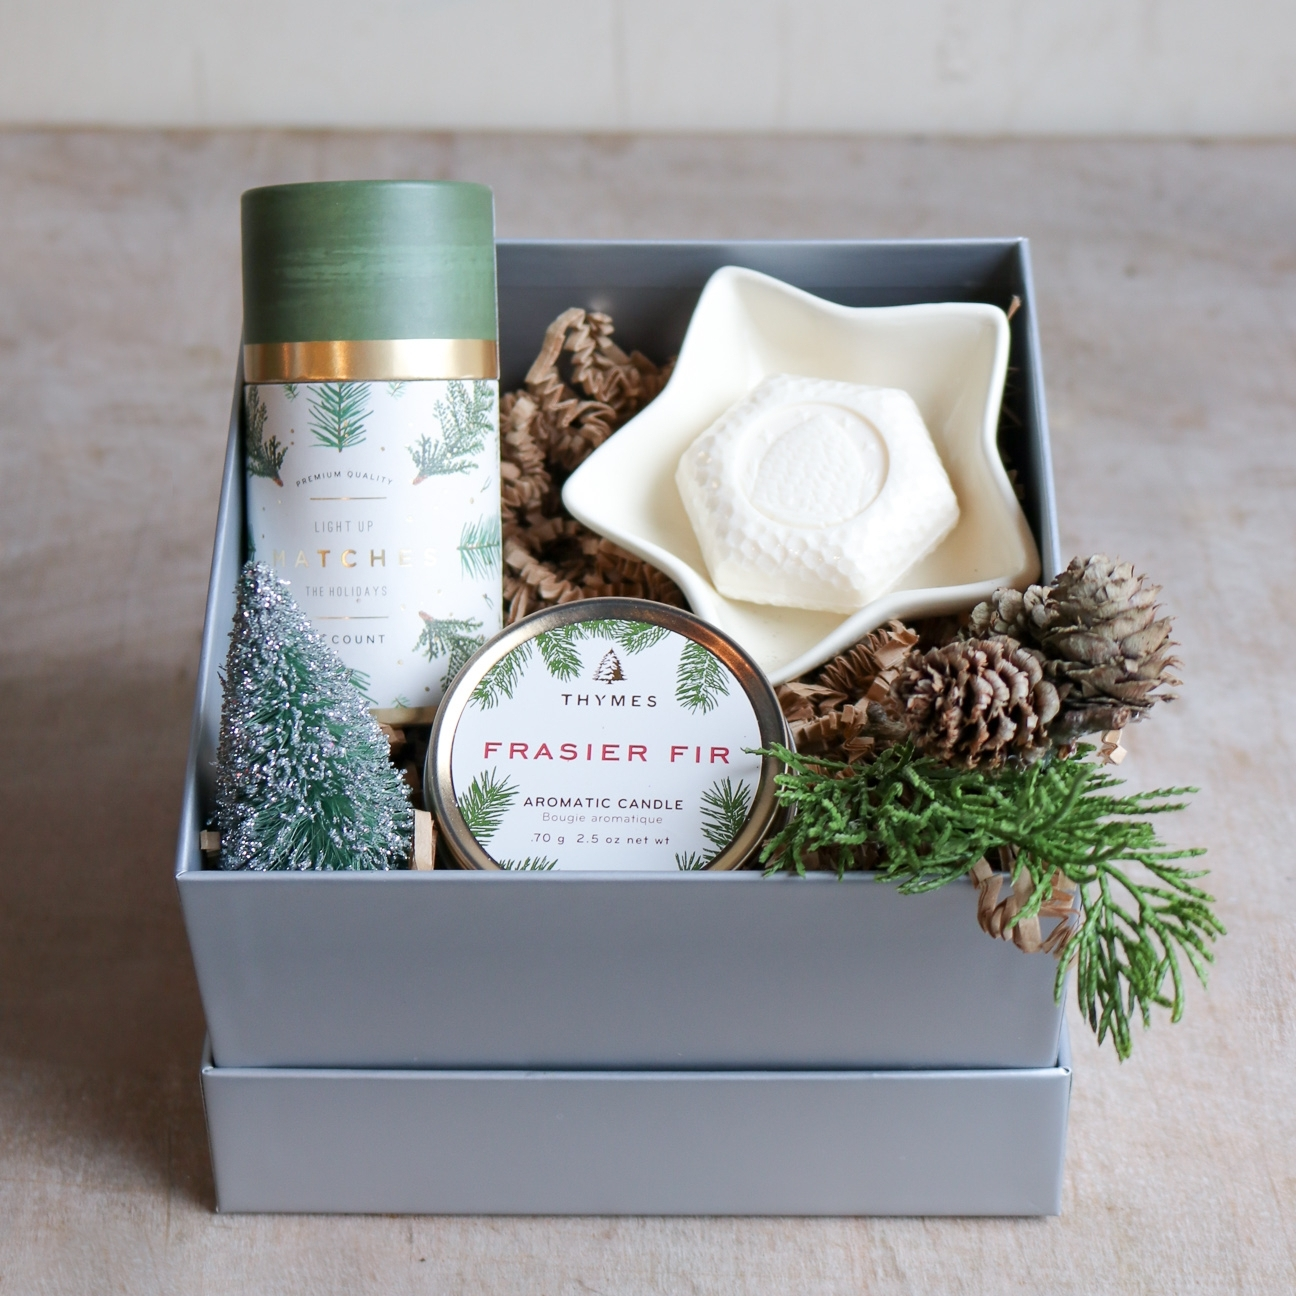 French goat milk soap, cedarwood candle, matches & star dish